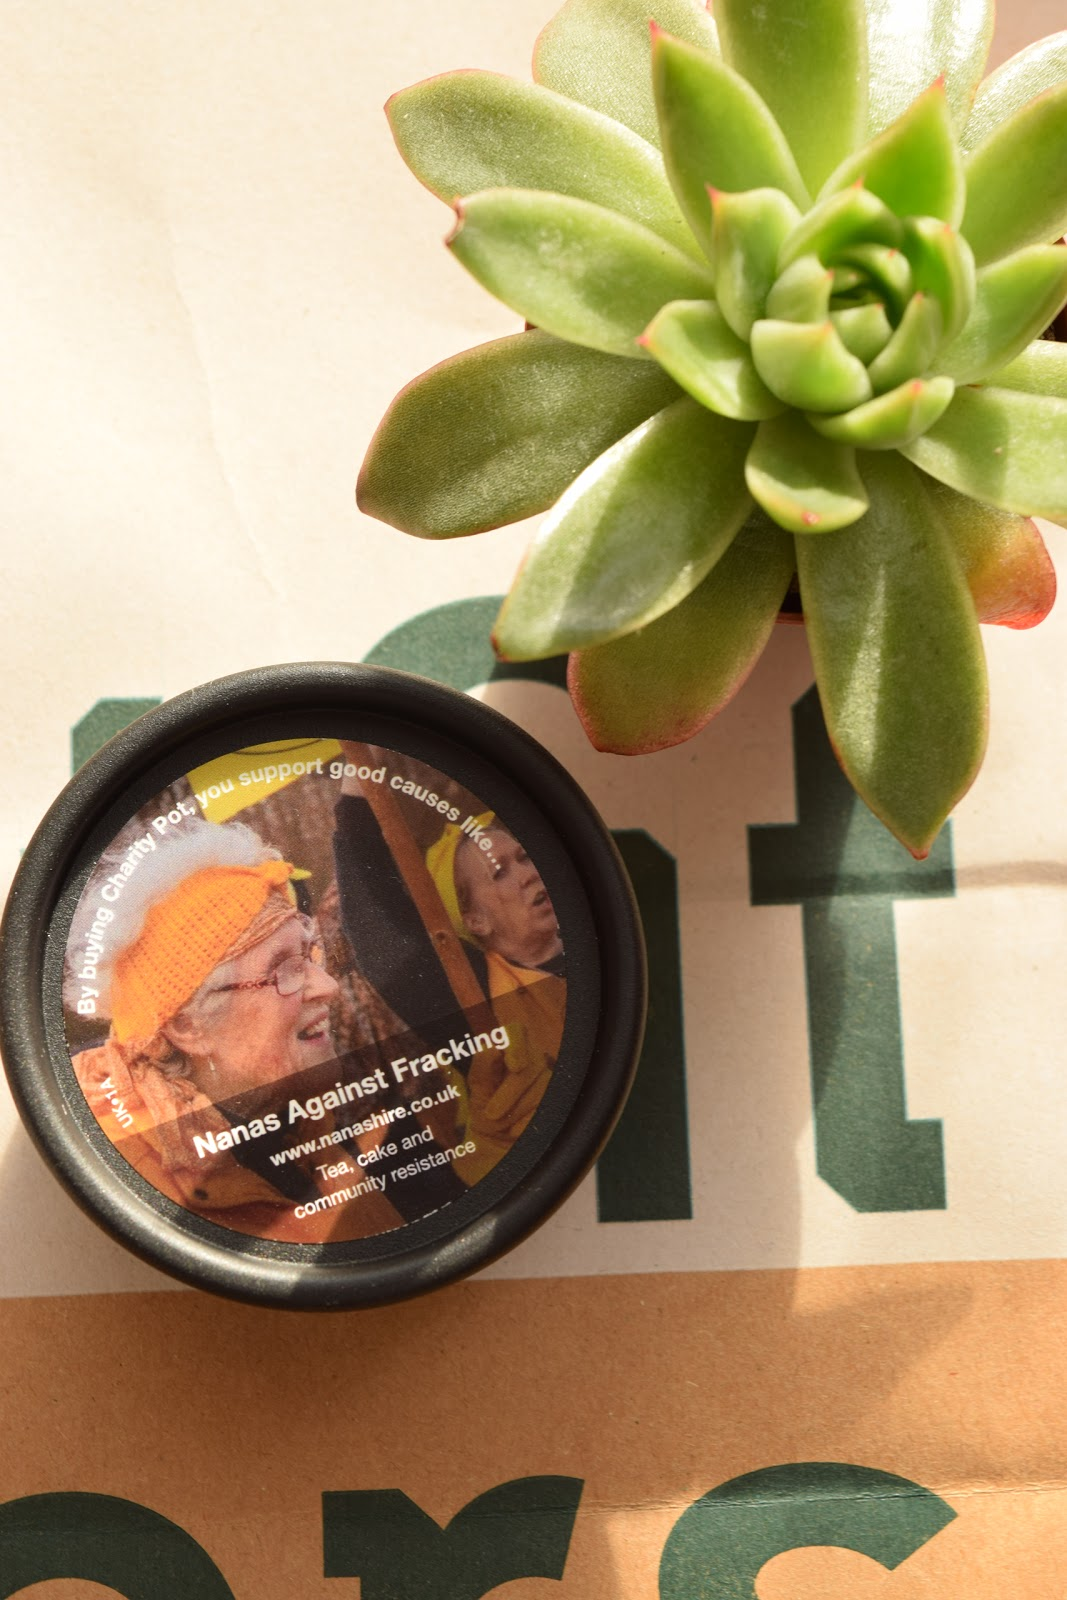 Leeds collective haul: Lush, Village, Urban outfitters